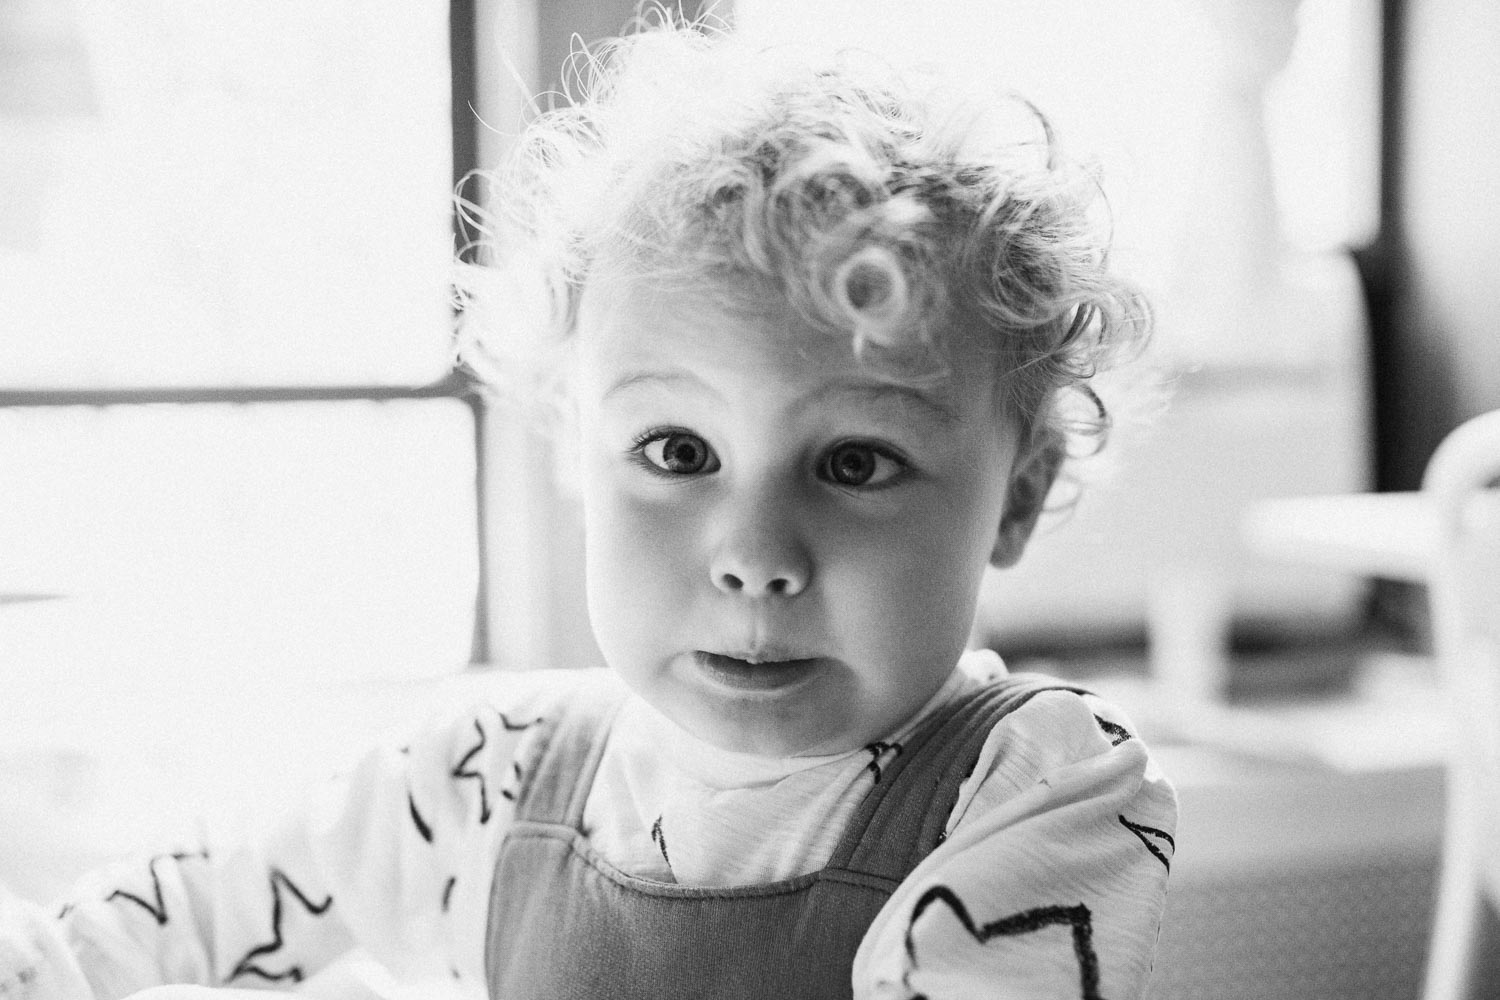 natural-and-artistic-black-and-white-photo-little-boy-making-silly-cross-eyed-face-slc-utah